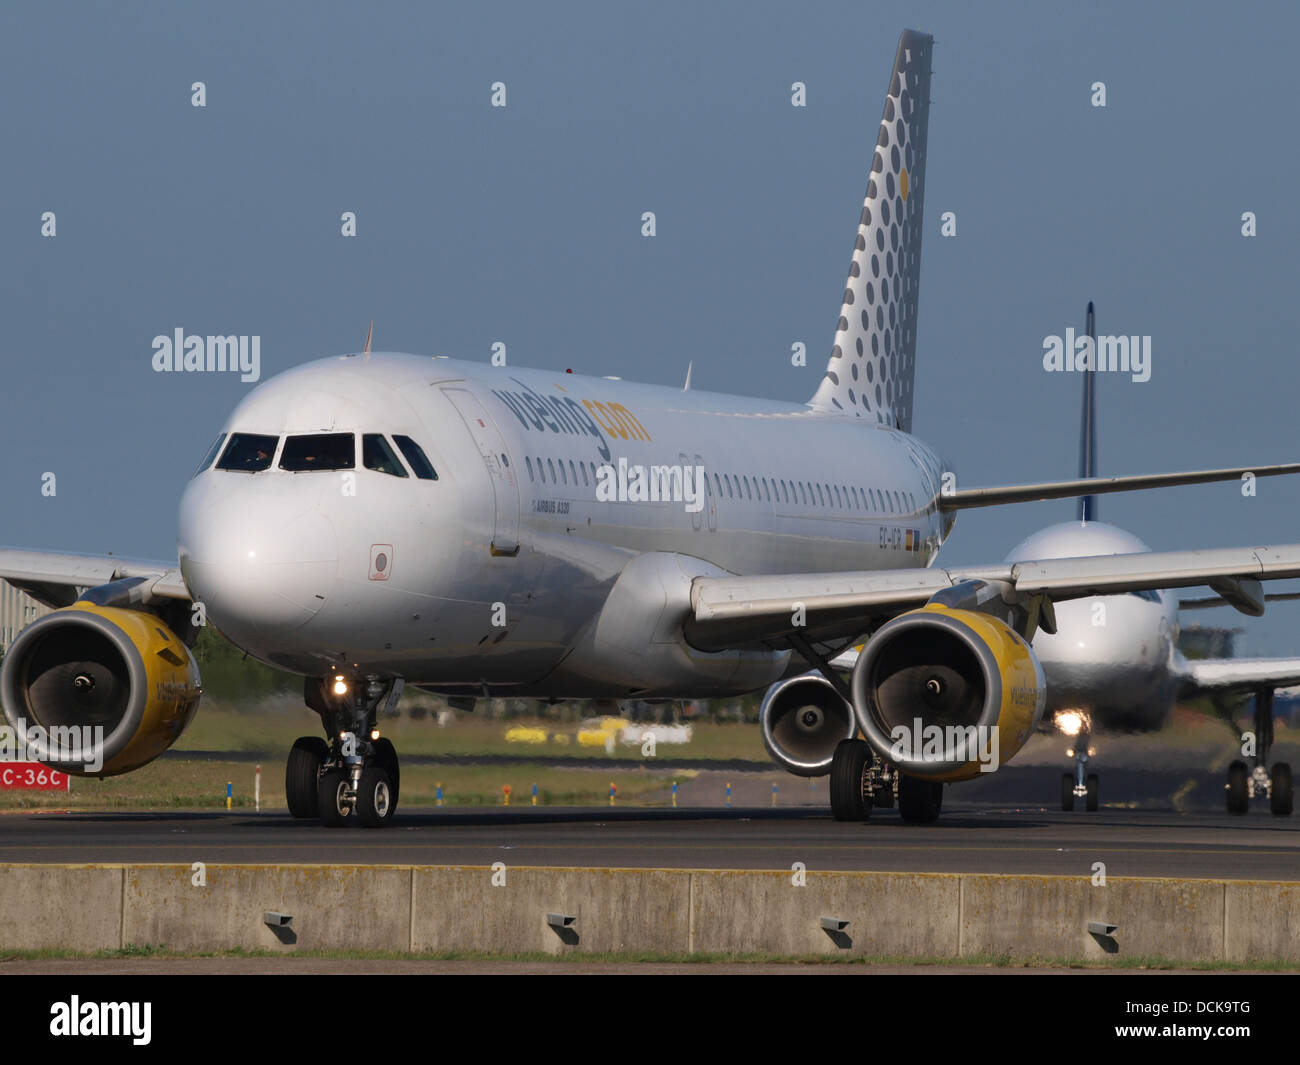 EC-ICR Vueling Airbus A320-211 - cn 240 taxiing 18july2013 pic-002 - Stock Image